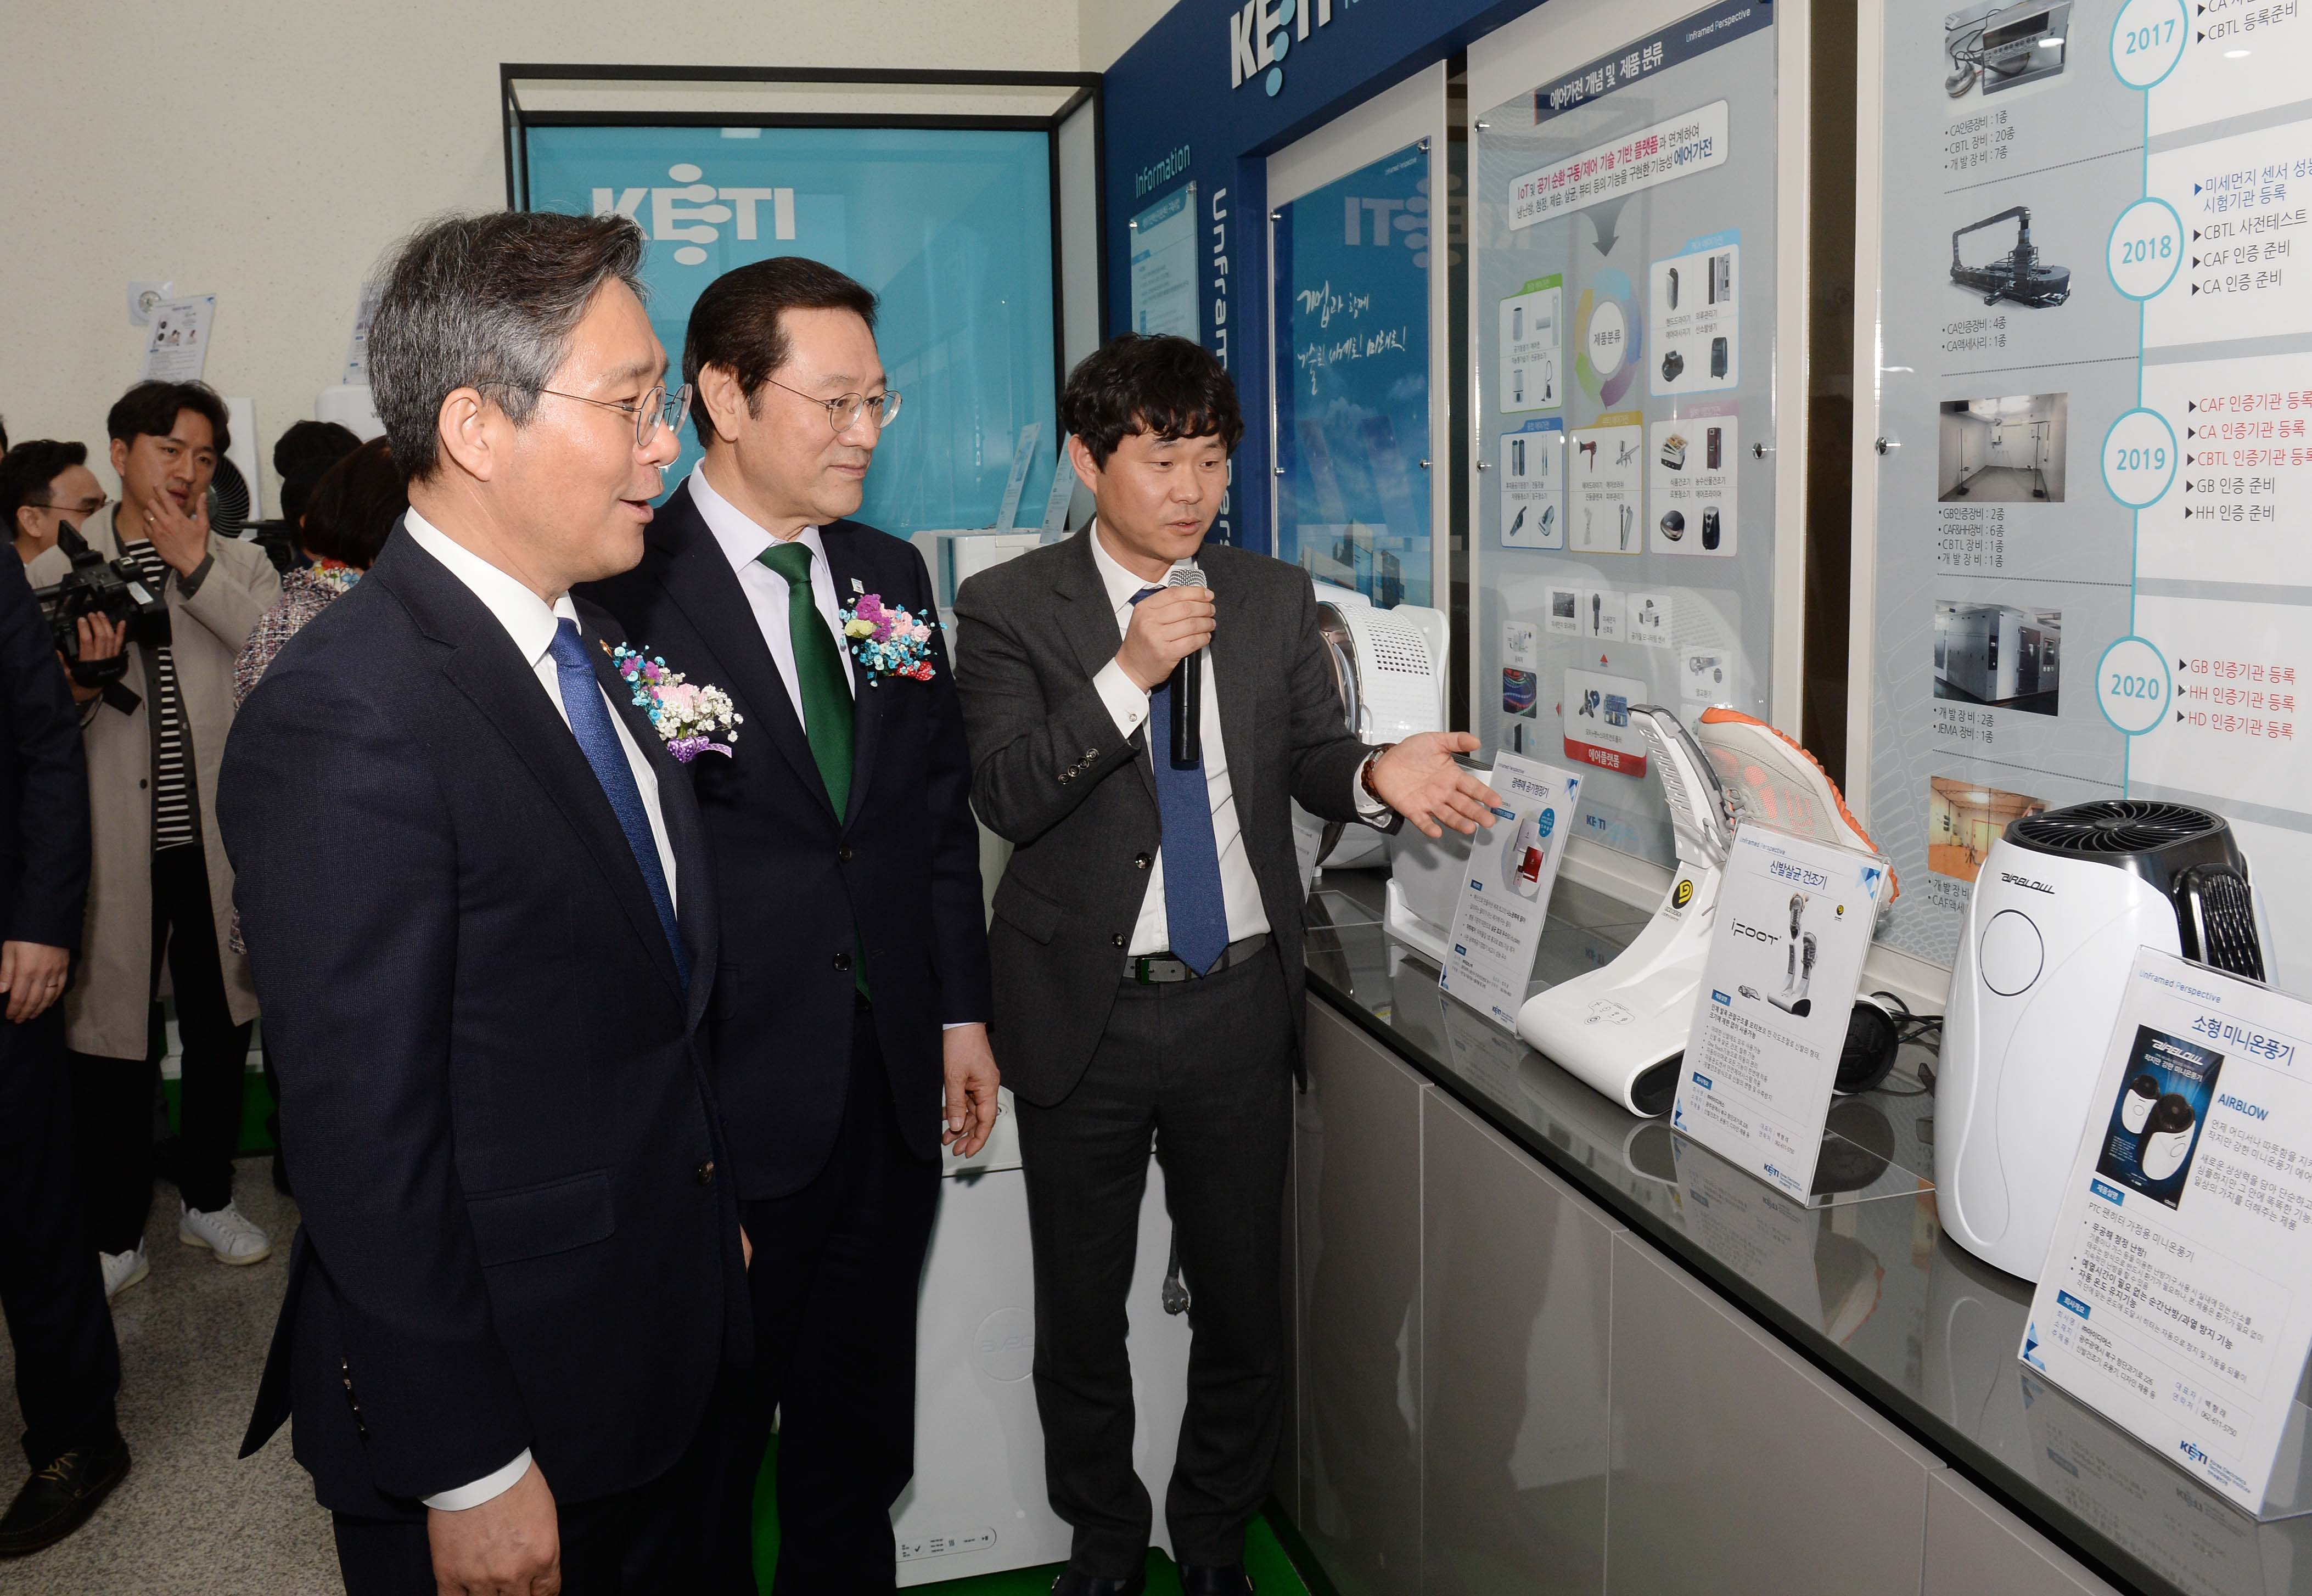 Korean air purifier business alliance moves into innovation center in Gwangju